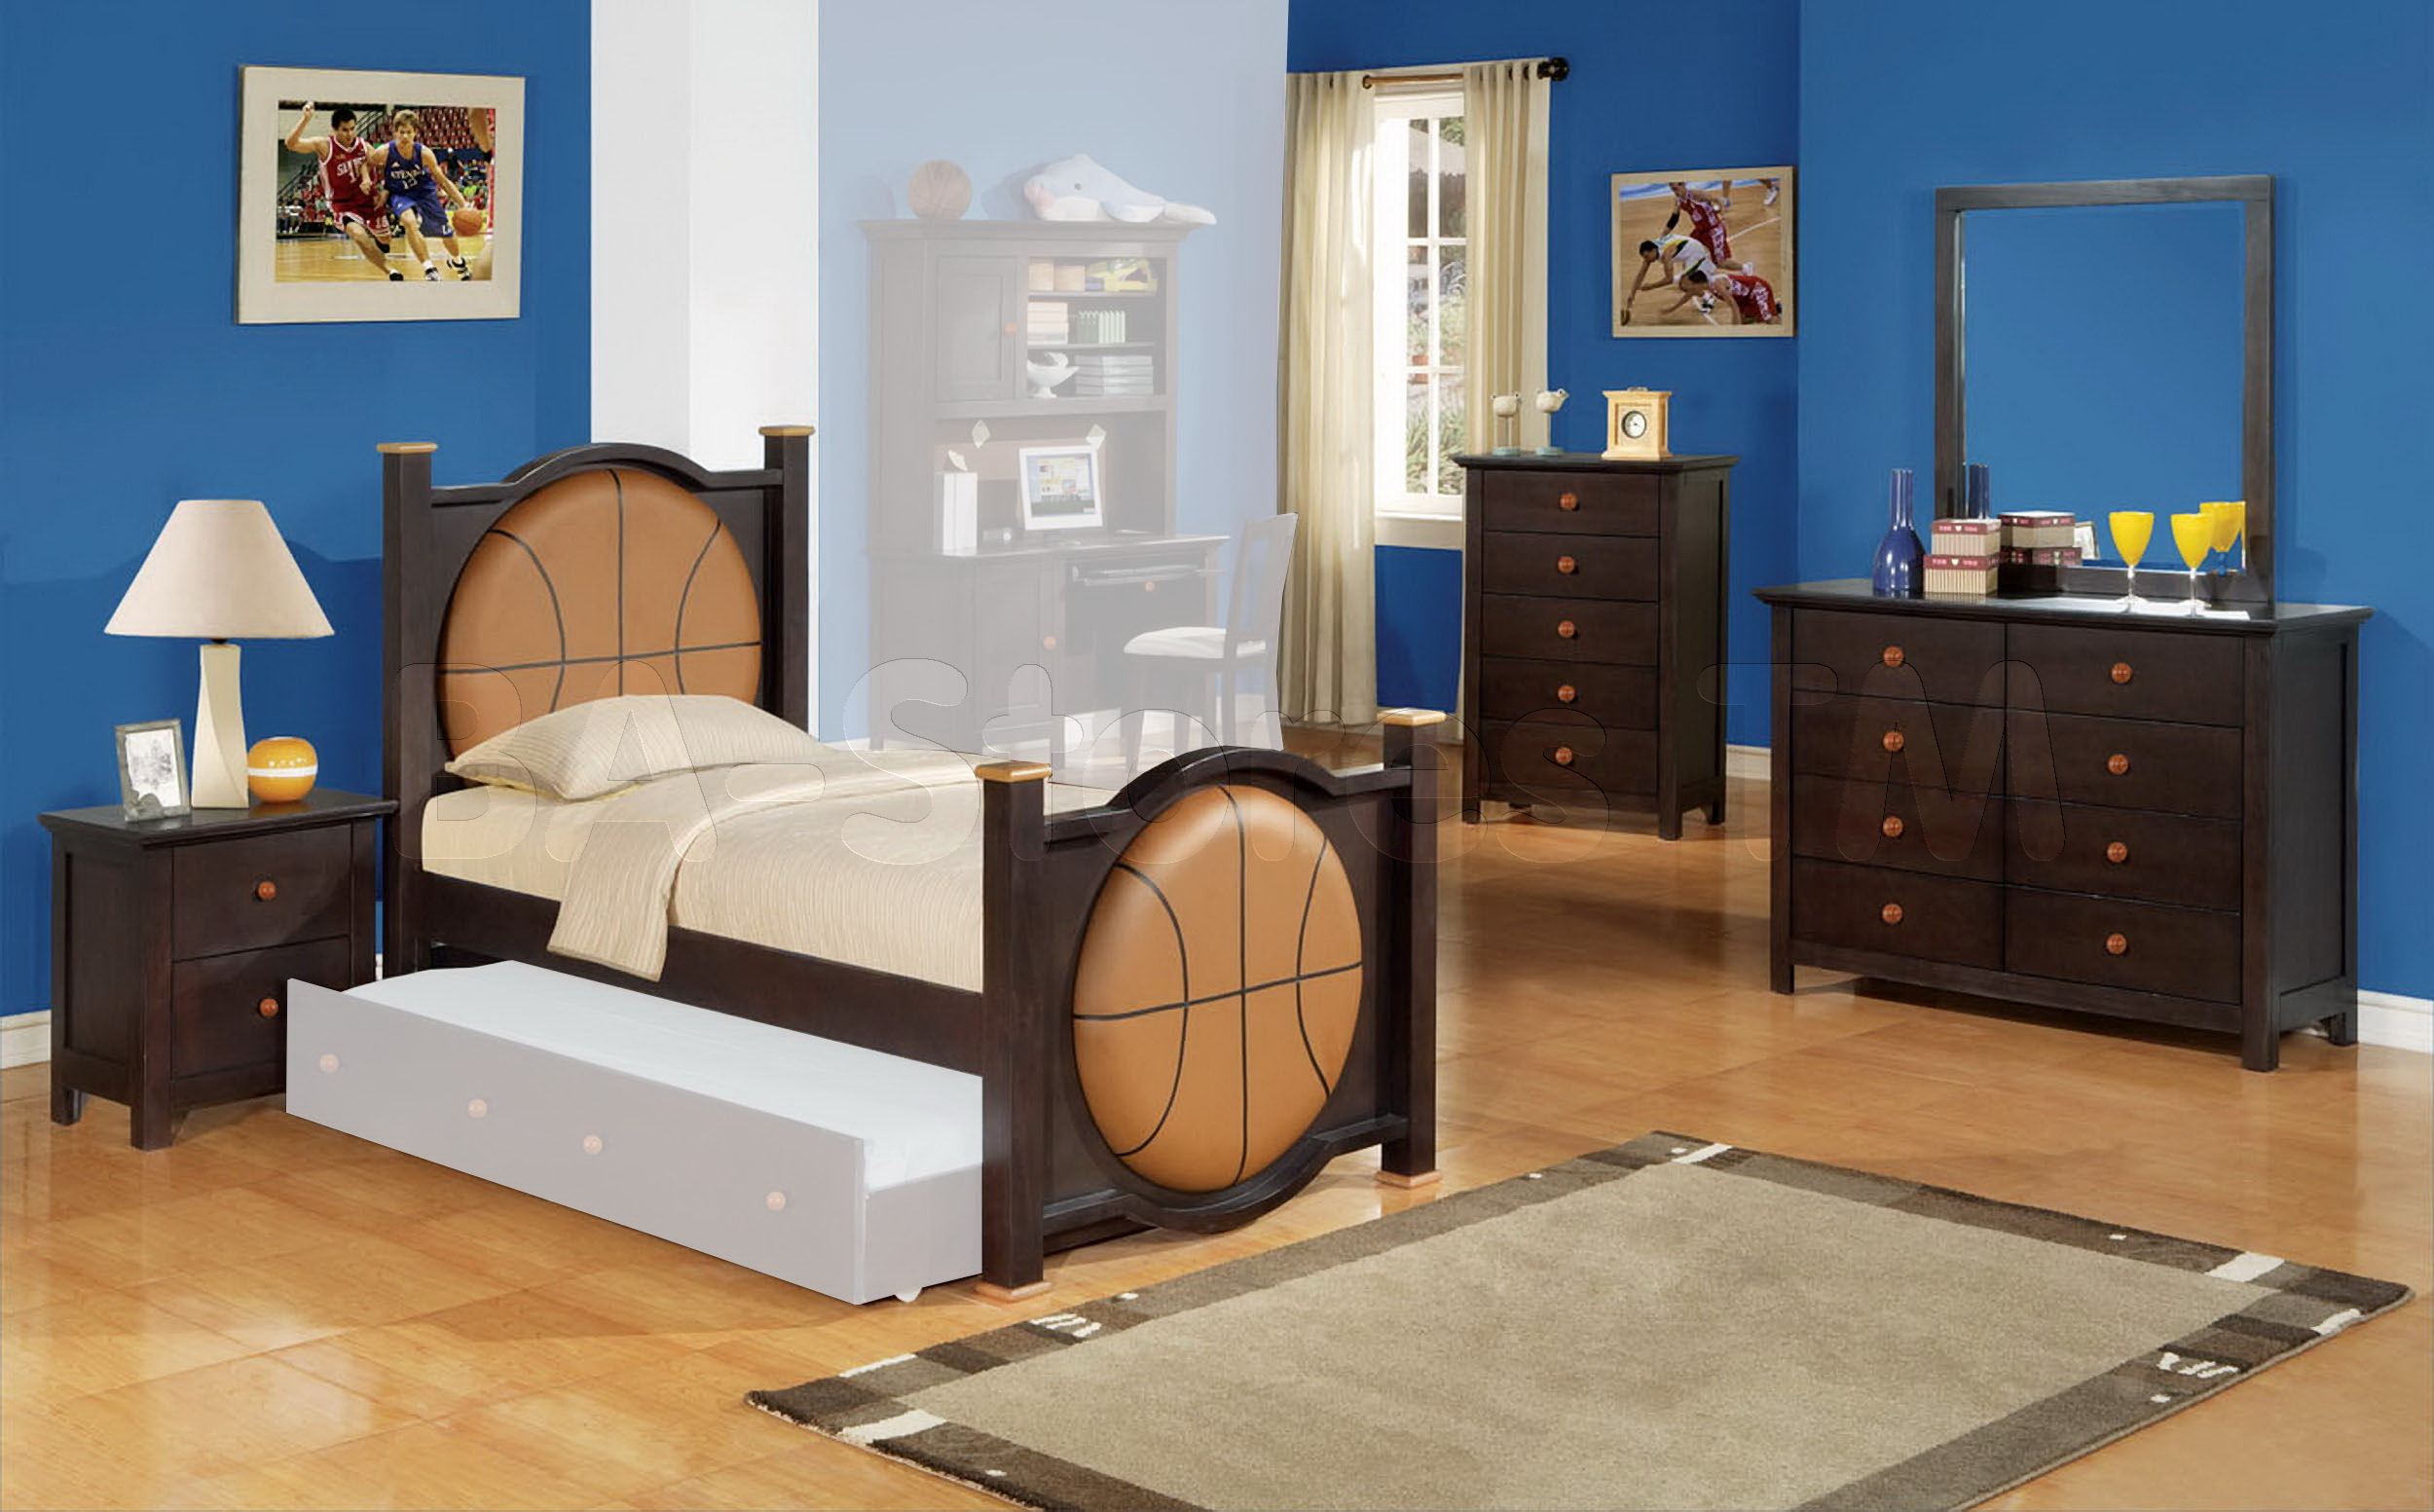 Boys basketball bedroom ideas - Basketball Bedrooms Large And Beautiful Photos Photo To Select Basketball Bedrooms